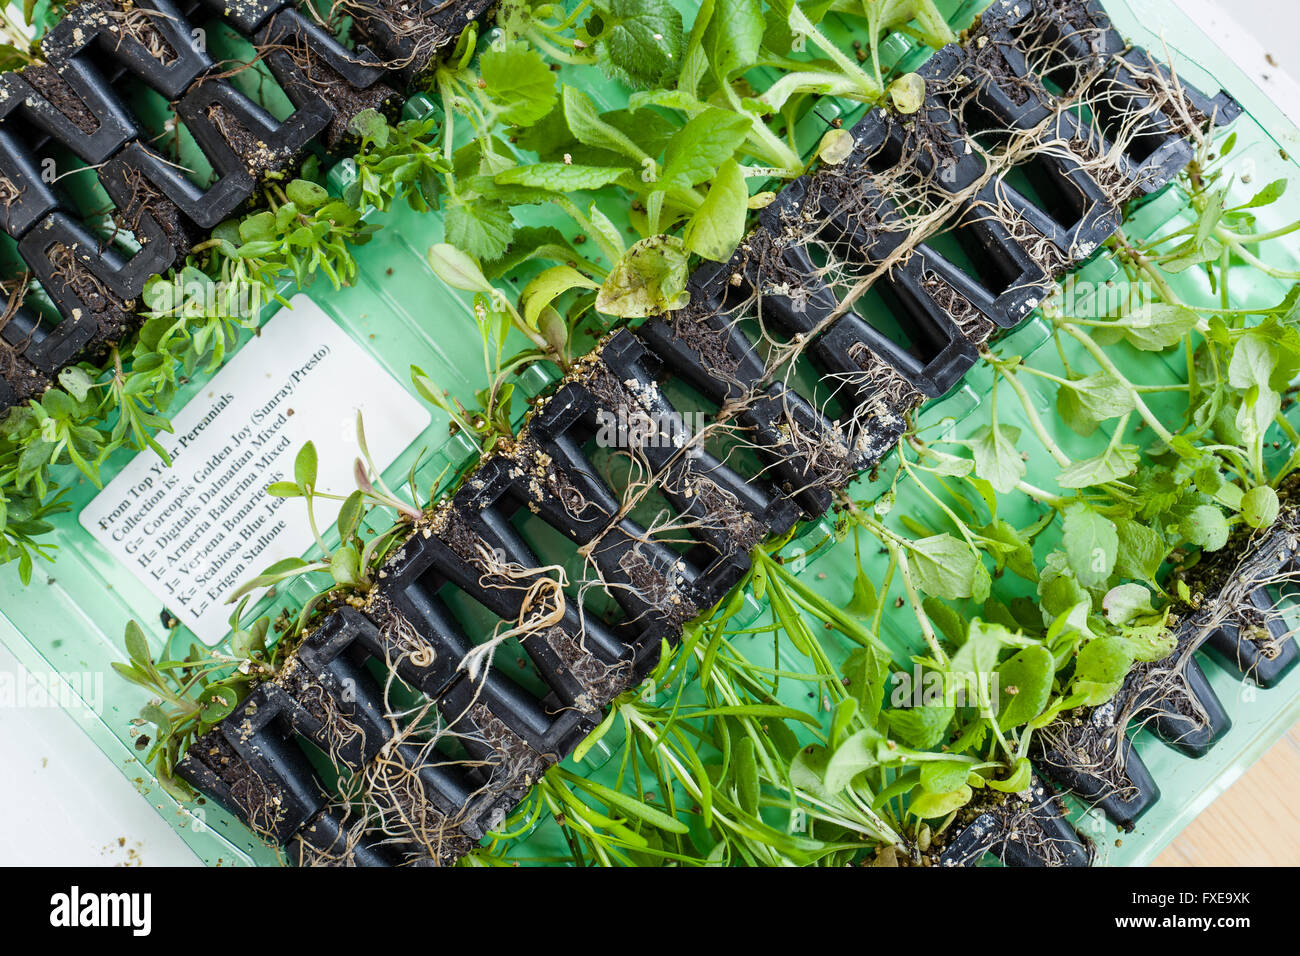 Small perennial plant plugs delivered by mail oerder - Stock Image